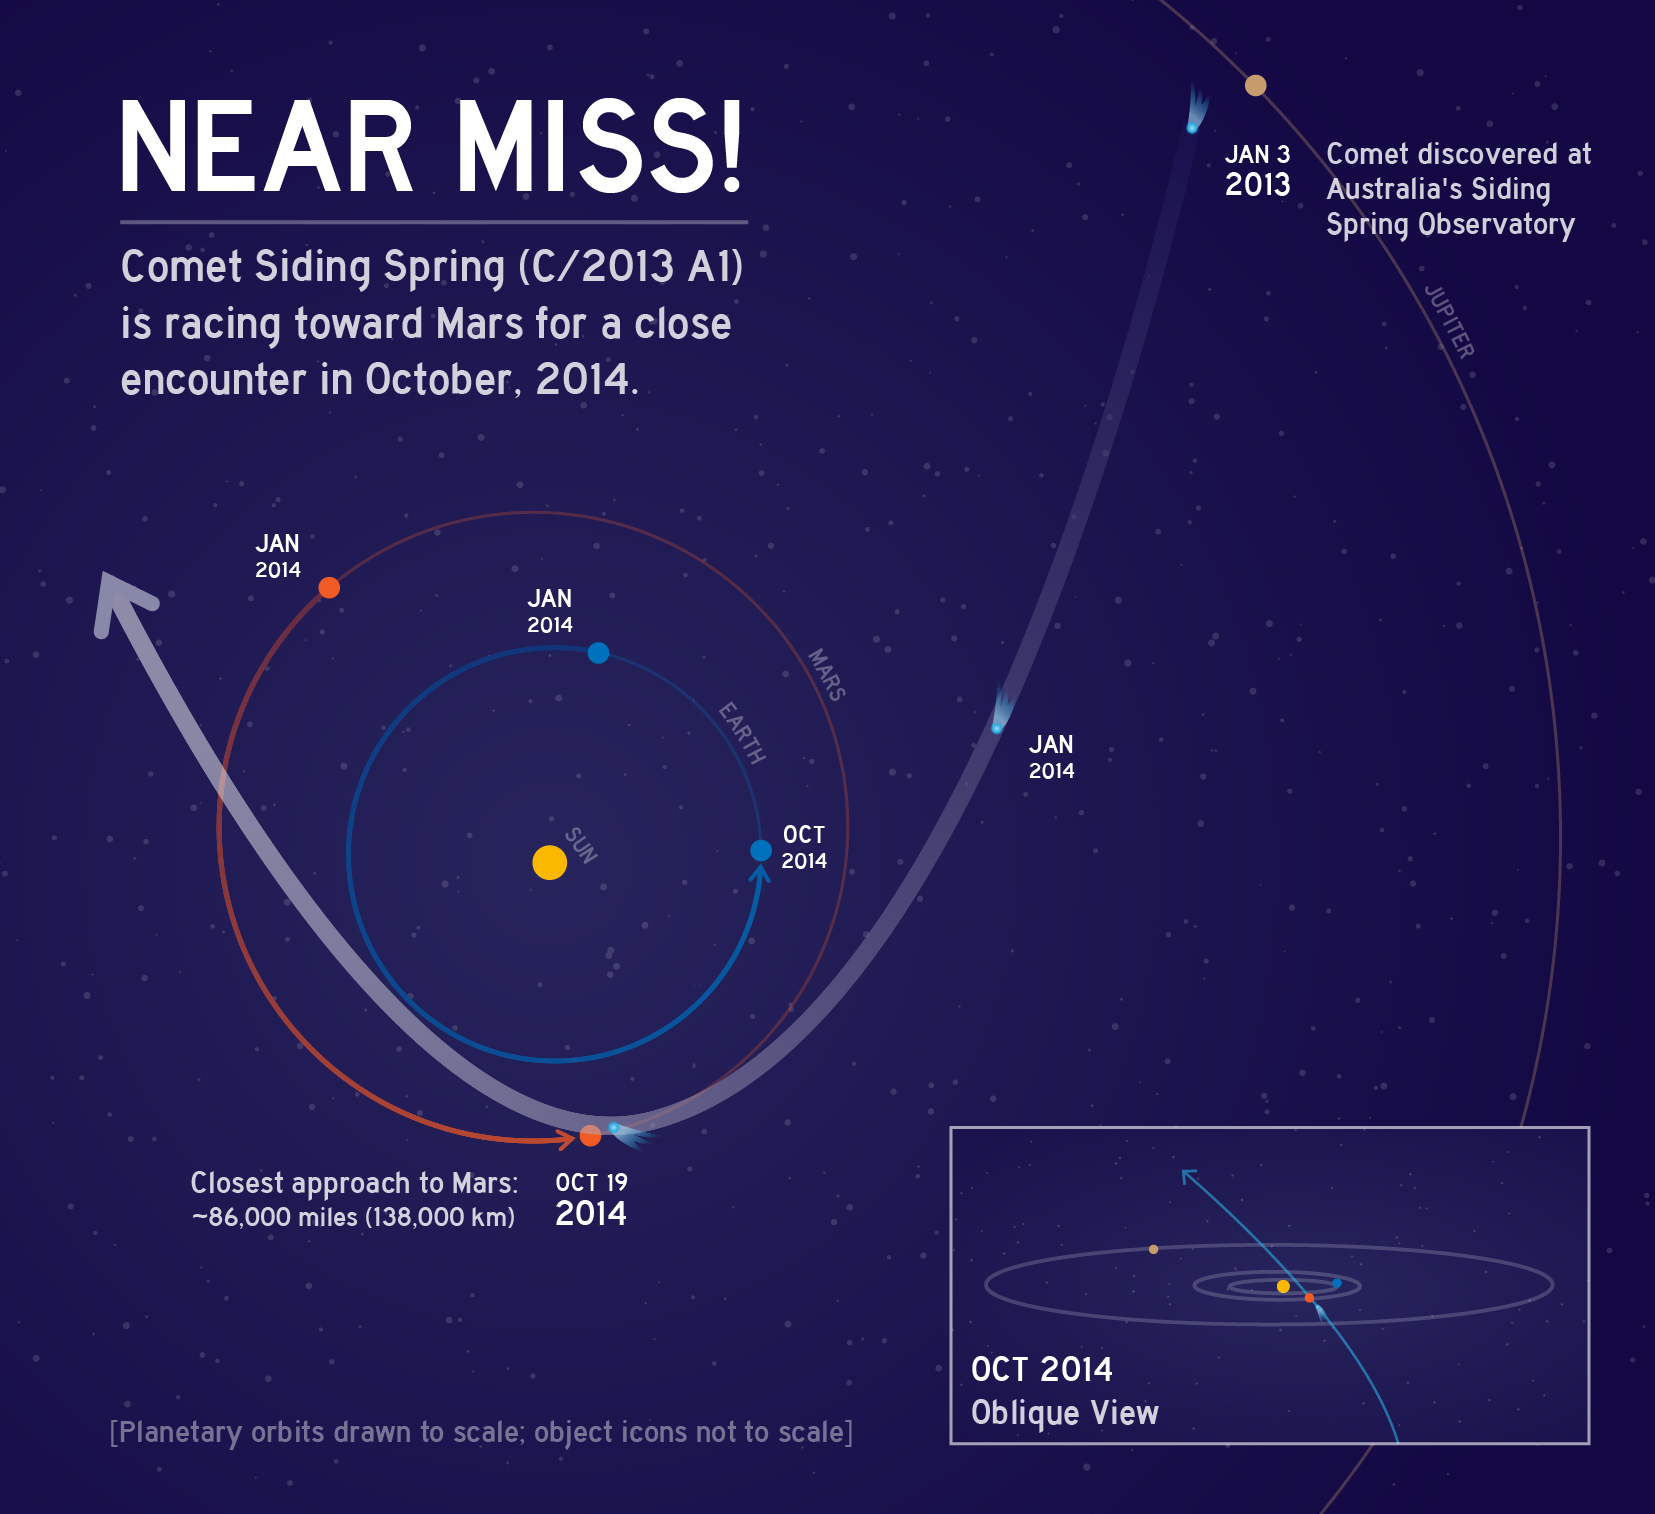 Near Miss! Comet Siding Spring